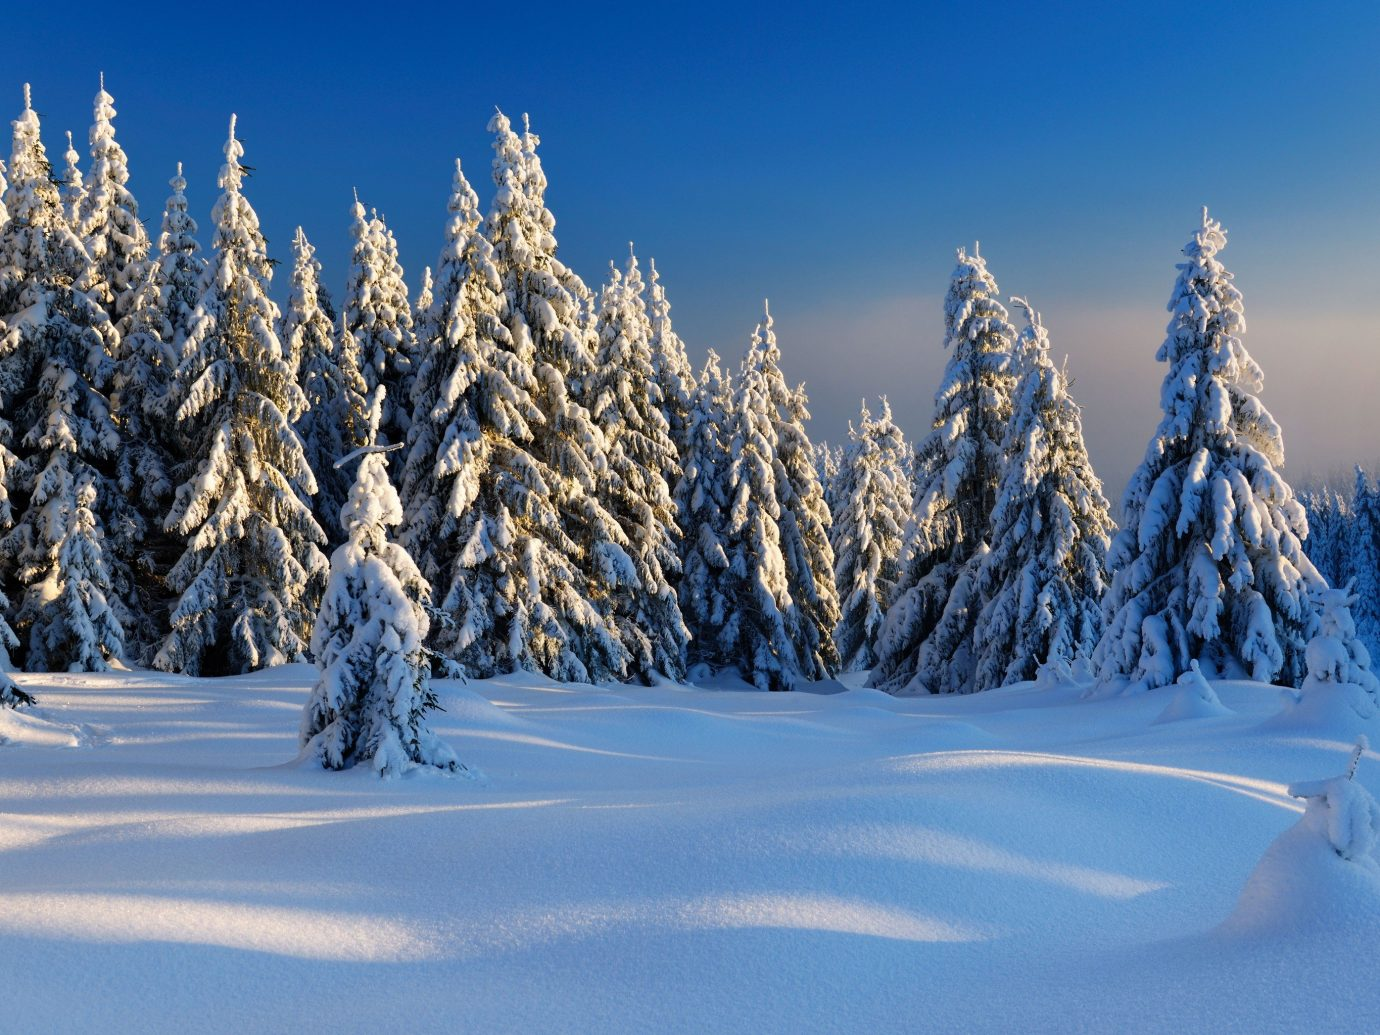 Trip Ideas snow outdoor tree sky skiing Winter Nature weather season plant slope mountain woody plant freezing fir spruce mountain range larch frost branch piste